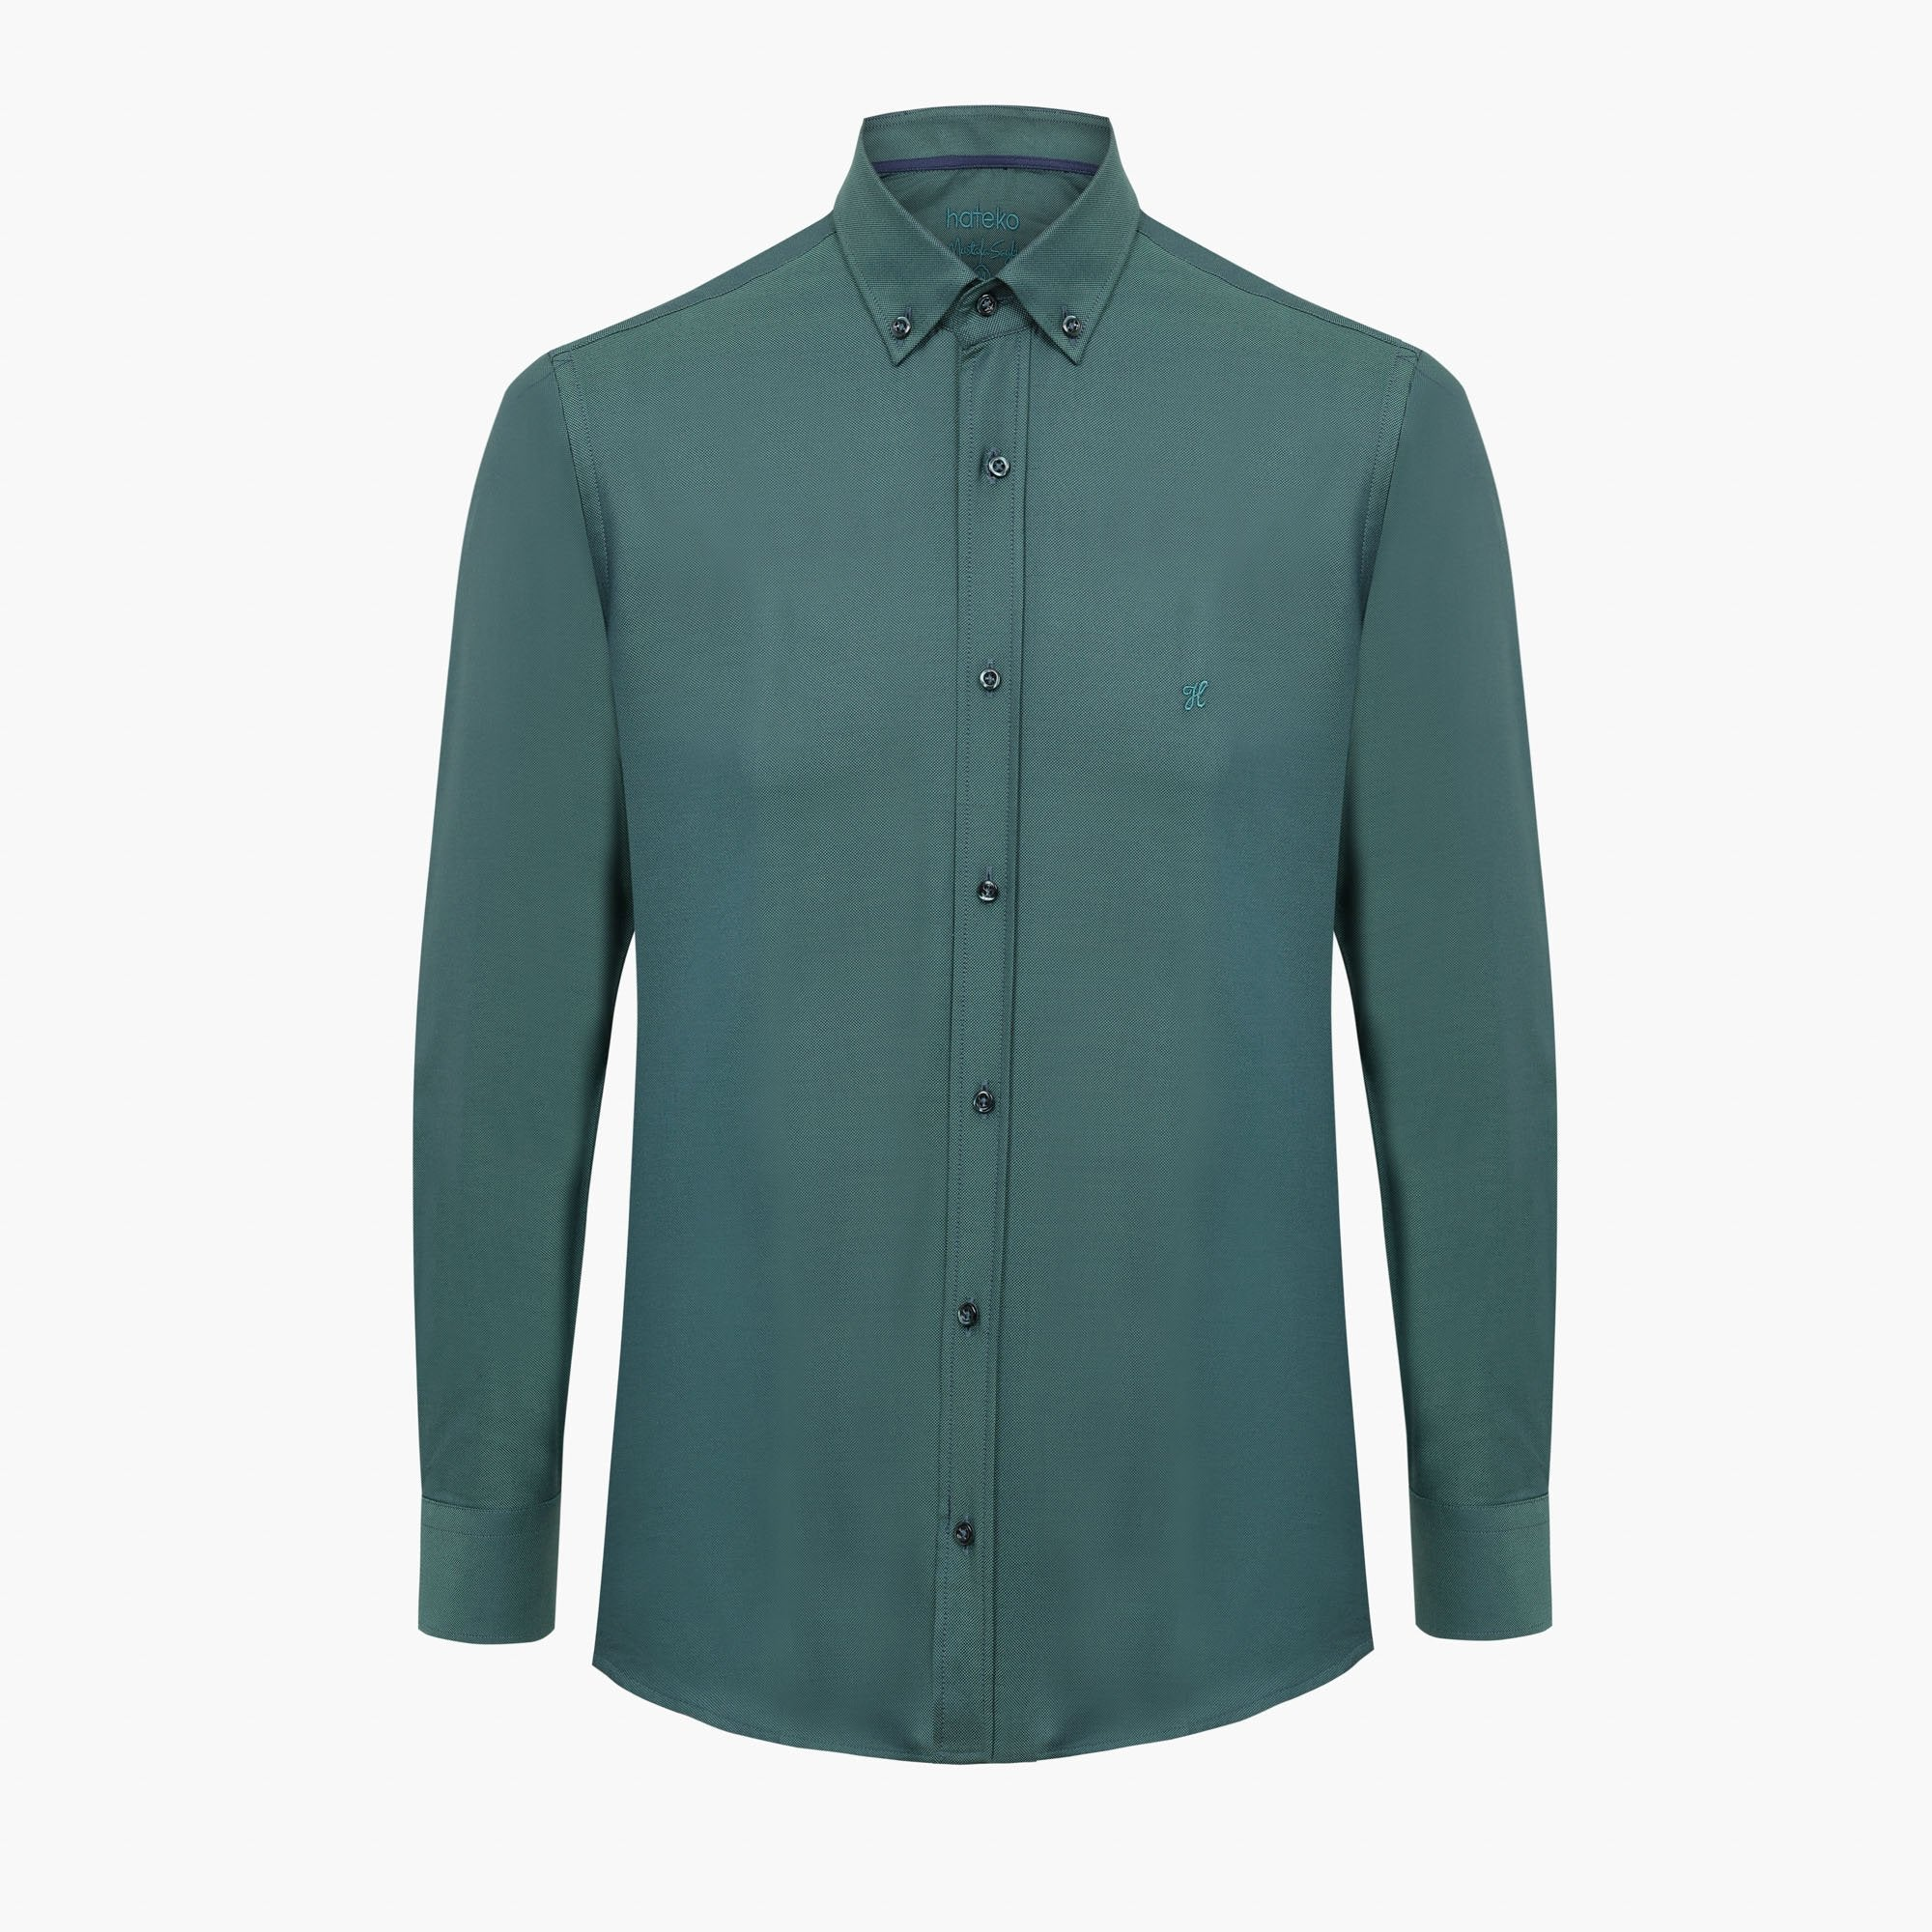 Green %100 Cotton Oxford Shirt